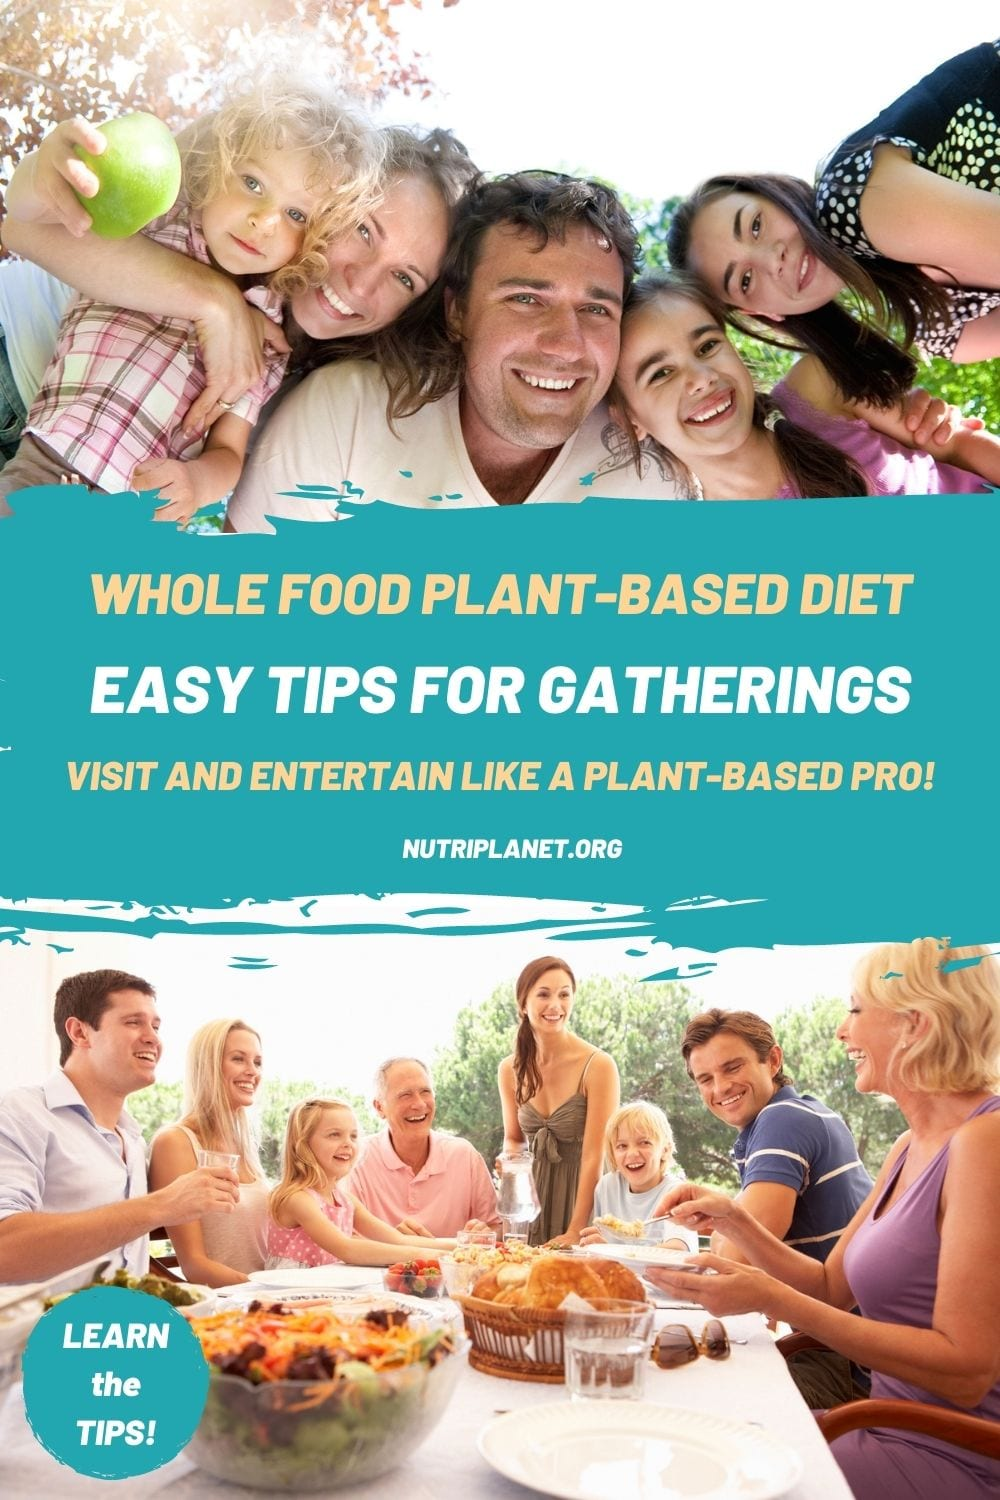 Learn a few easy tips on gatherings while eating a whole food plant-based diet